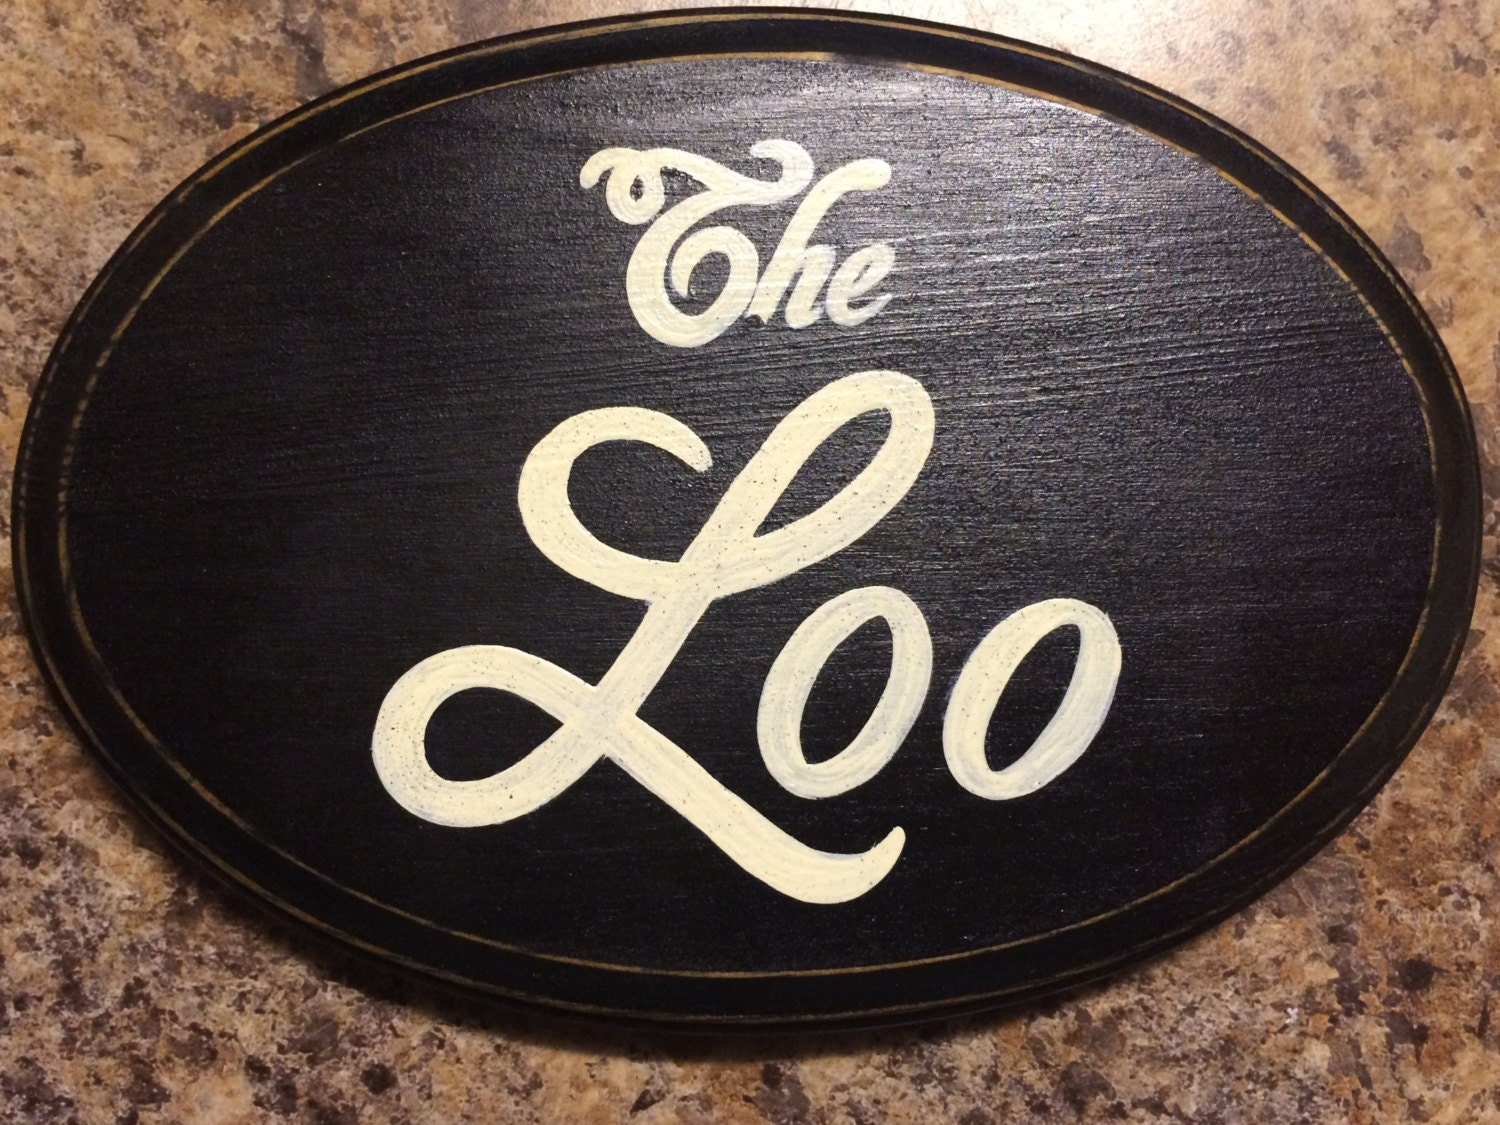 The Loo Oval Plaque Wooden Hand Painted Sign European English Bathroom Restroom Wall Decor You Pick